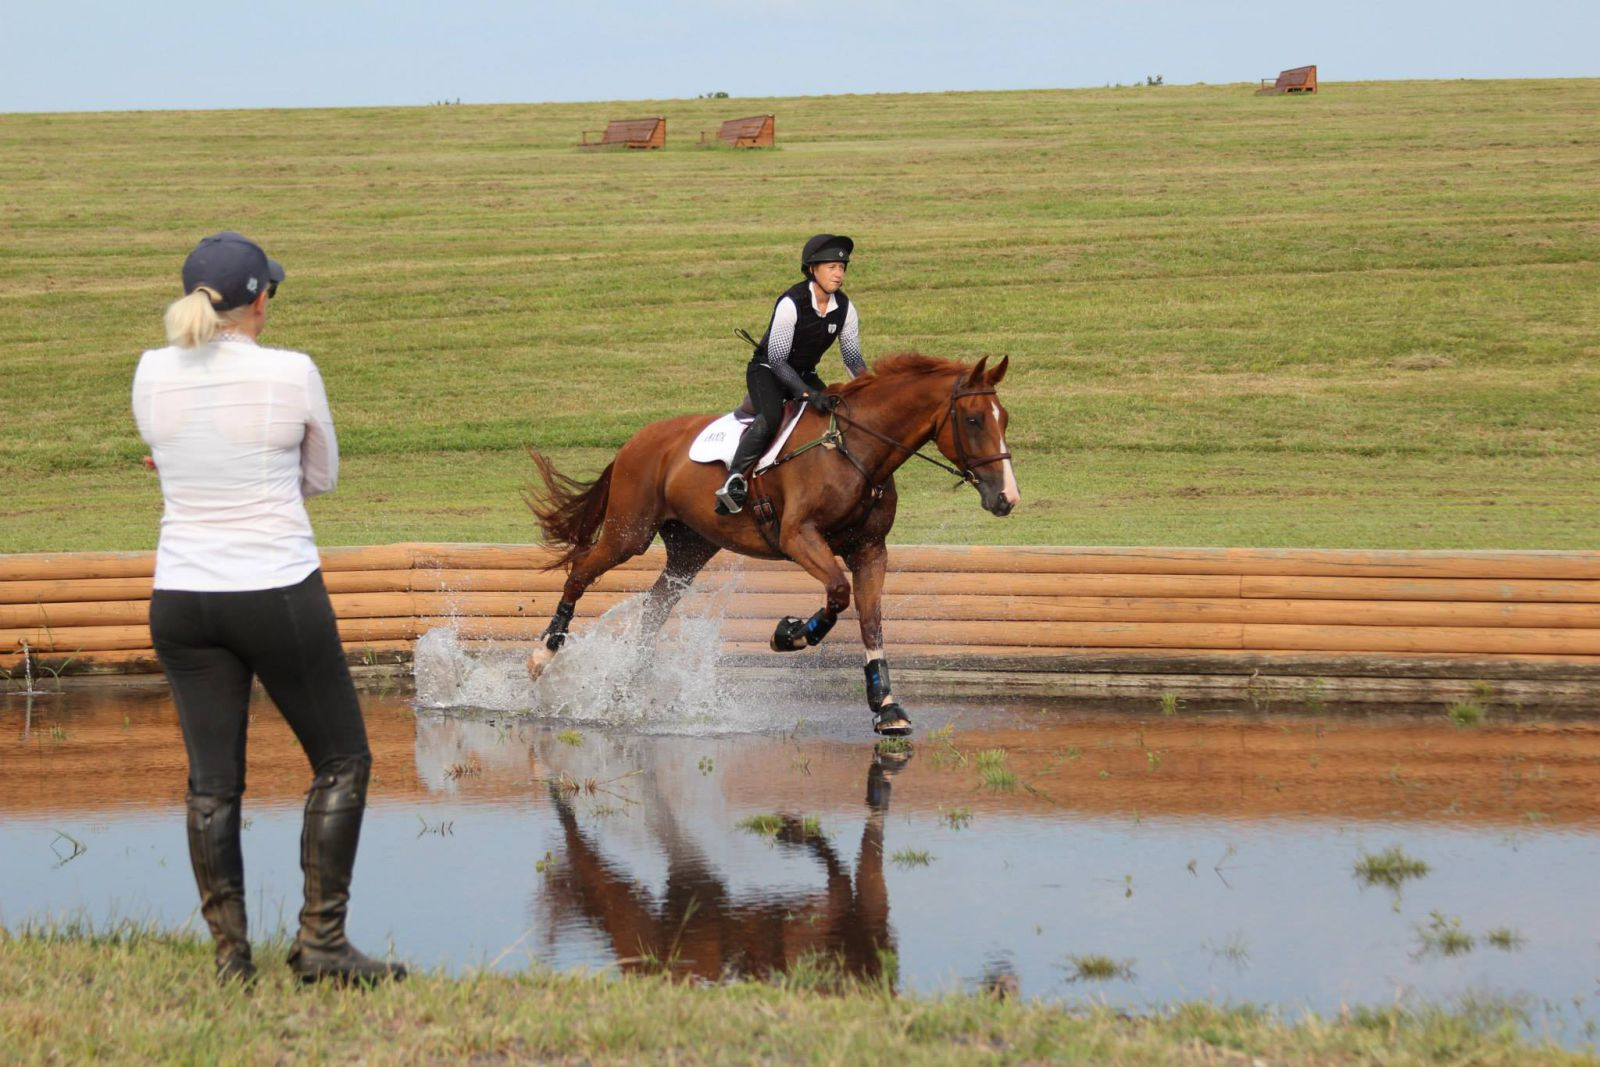 Coaching Amanda Pezold and Beth McDaniel's Alabar through the water complex. Photo by Susan Horner.